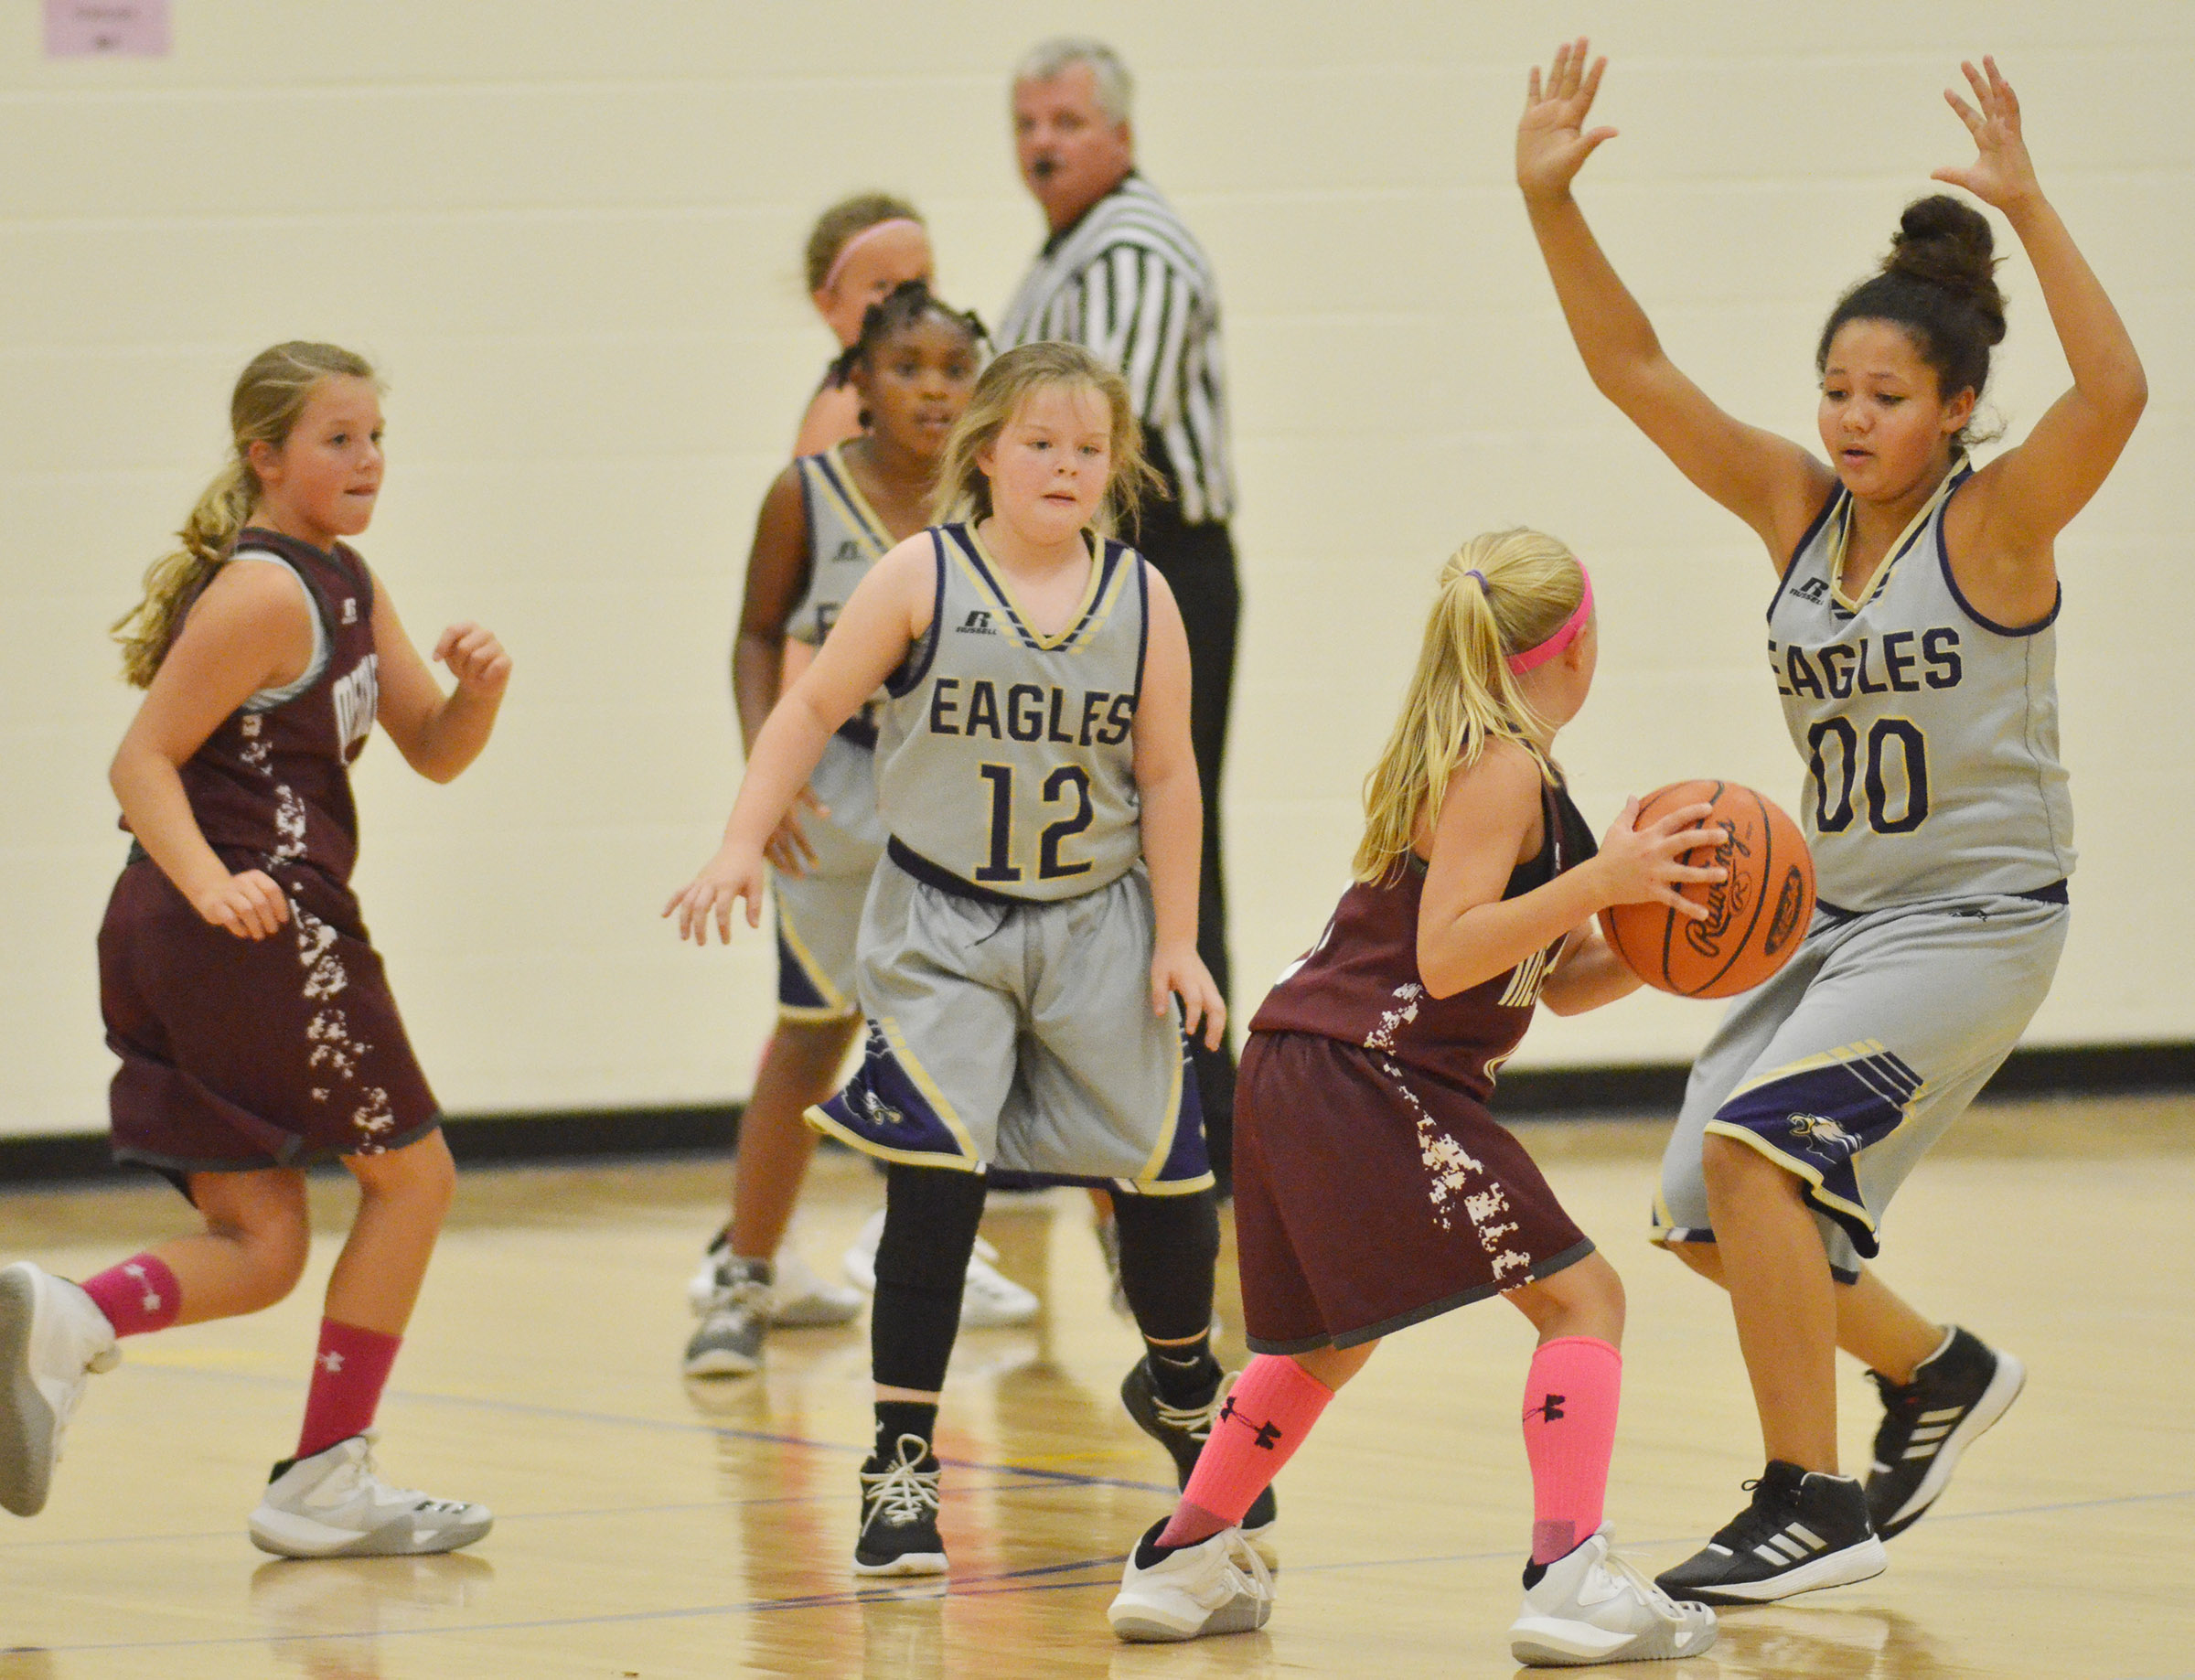 From left, Campbellsville Elementary School fifth-graders Ta'Zaria Owens, Miley Hash and Kenya Bridgewater play defense.